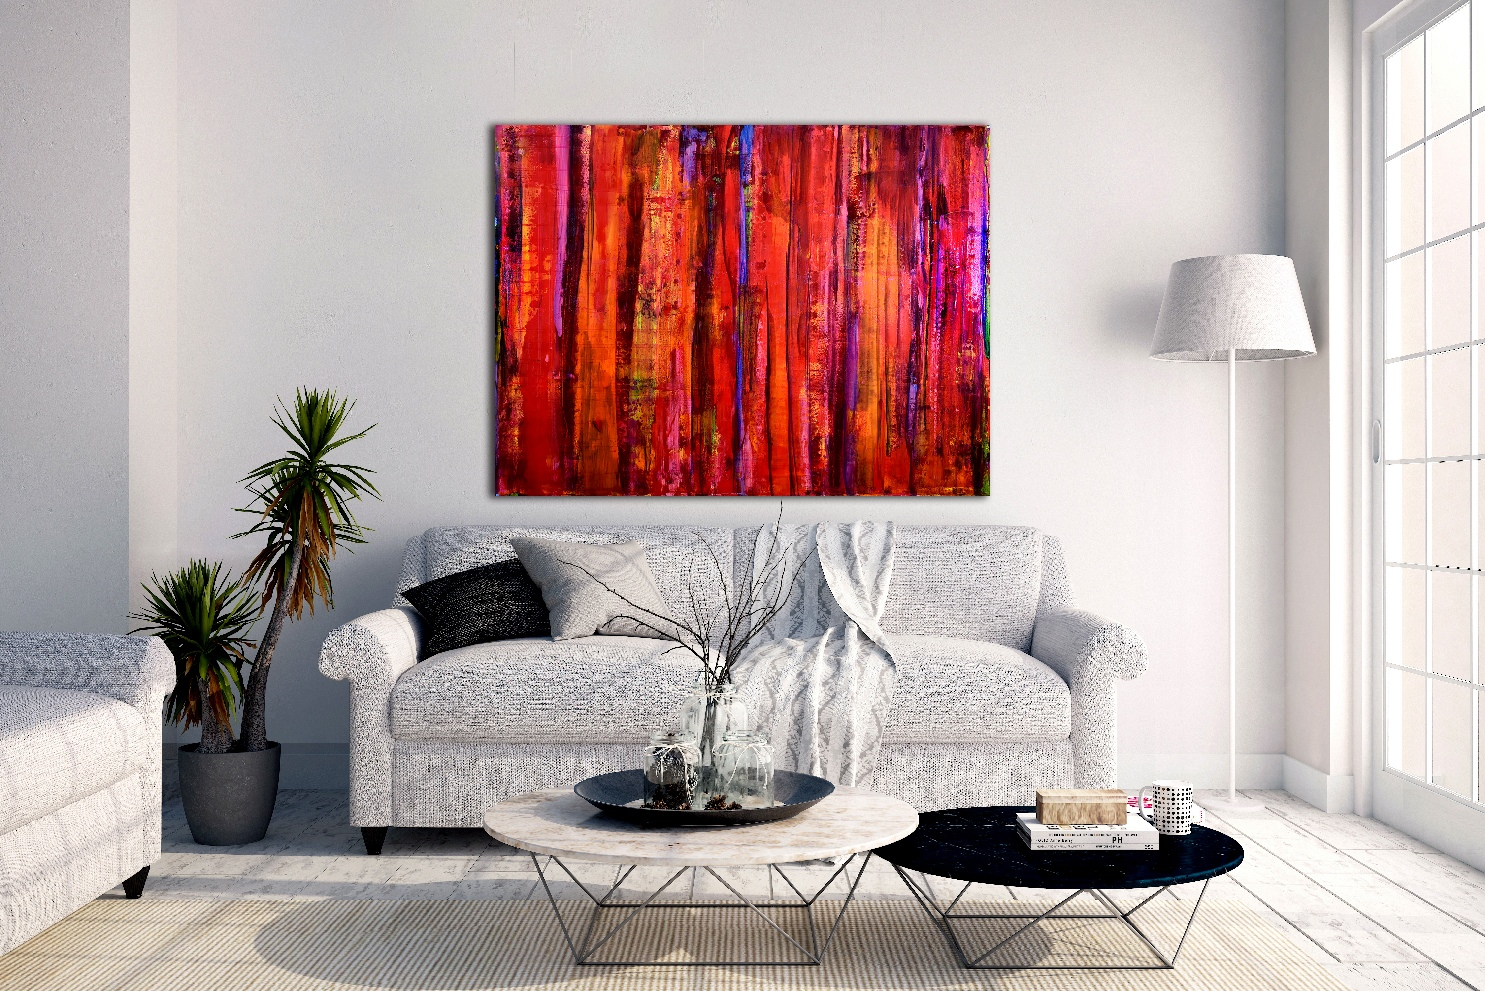 Abstract Spectra 3 by Nestor Toro in Los Angeles